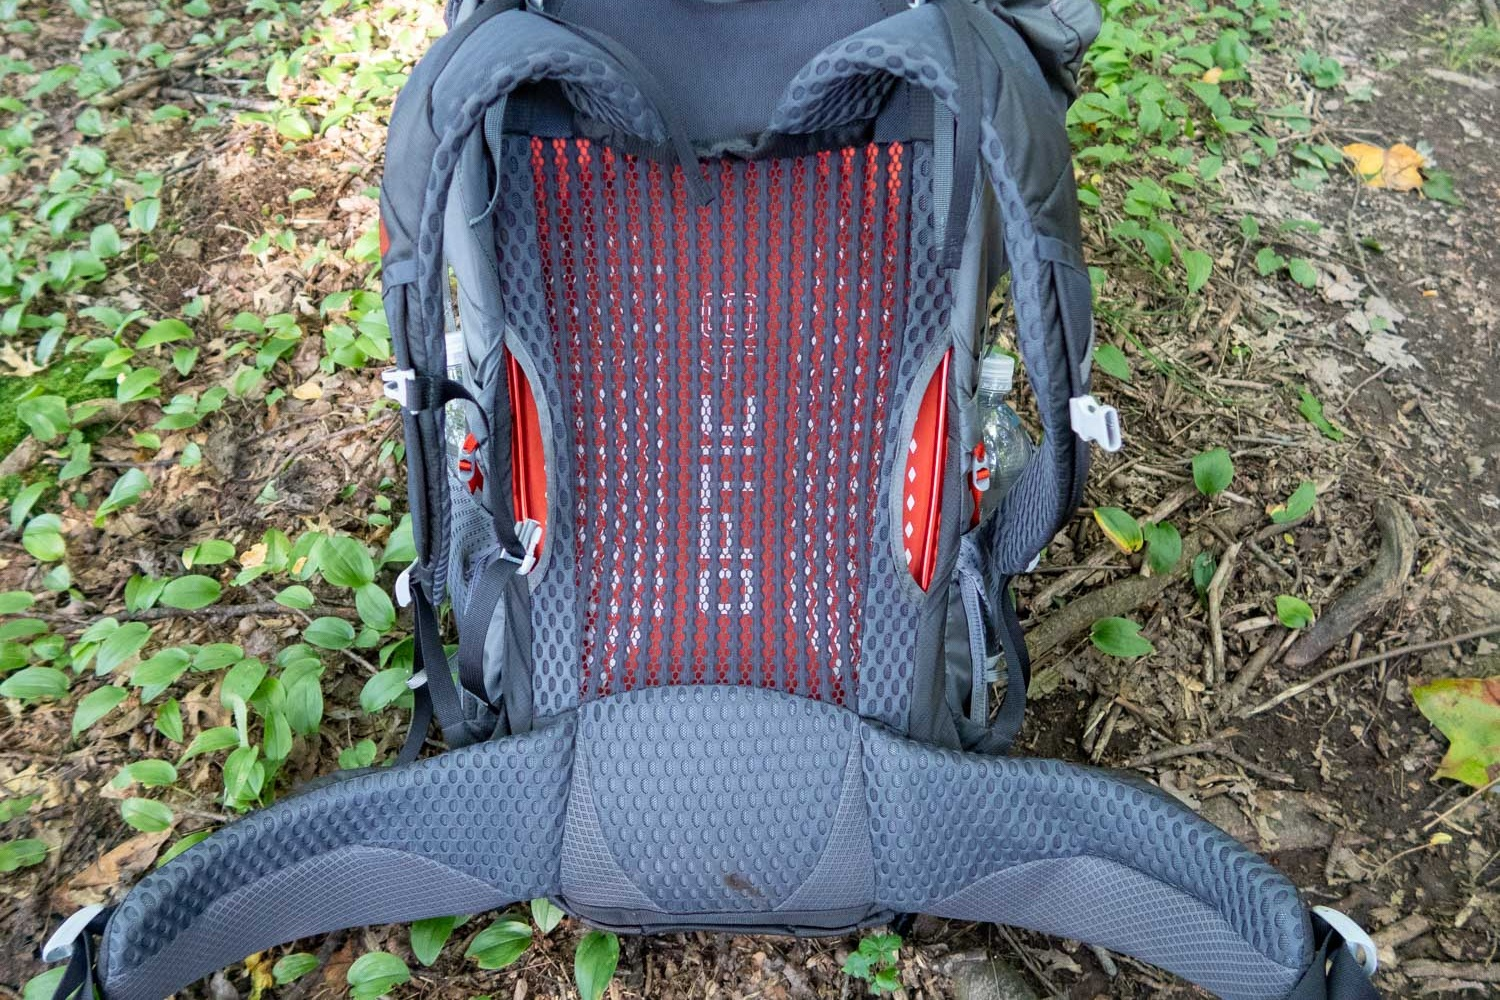 comfortable padding in the lumbar area, hip belt, and shoulder straps